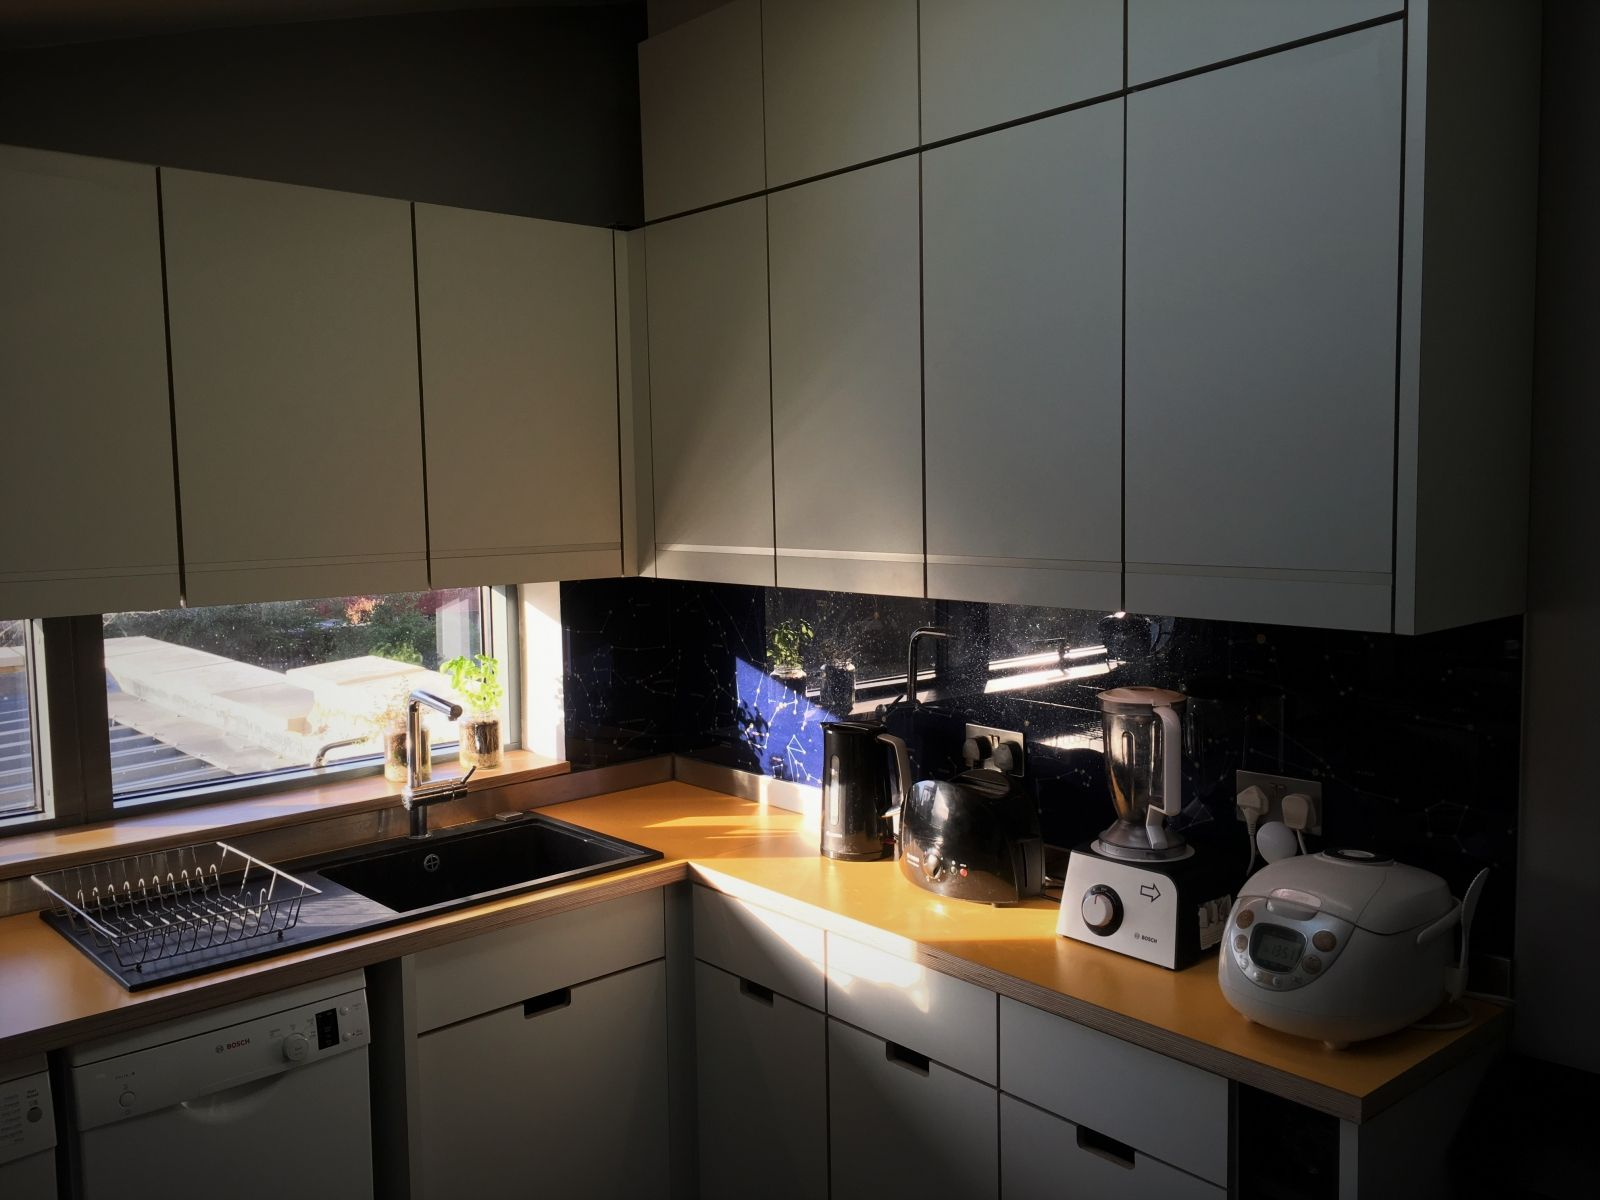 Small Kitchen: Laminated Birch Ply Cabinets And Worktop. Design By Starlight  Architecture.